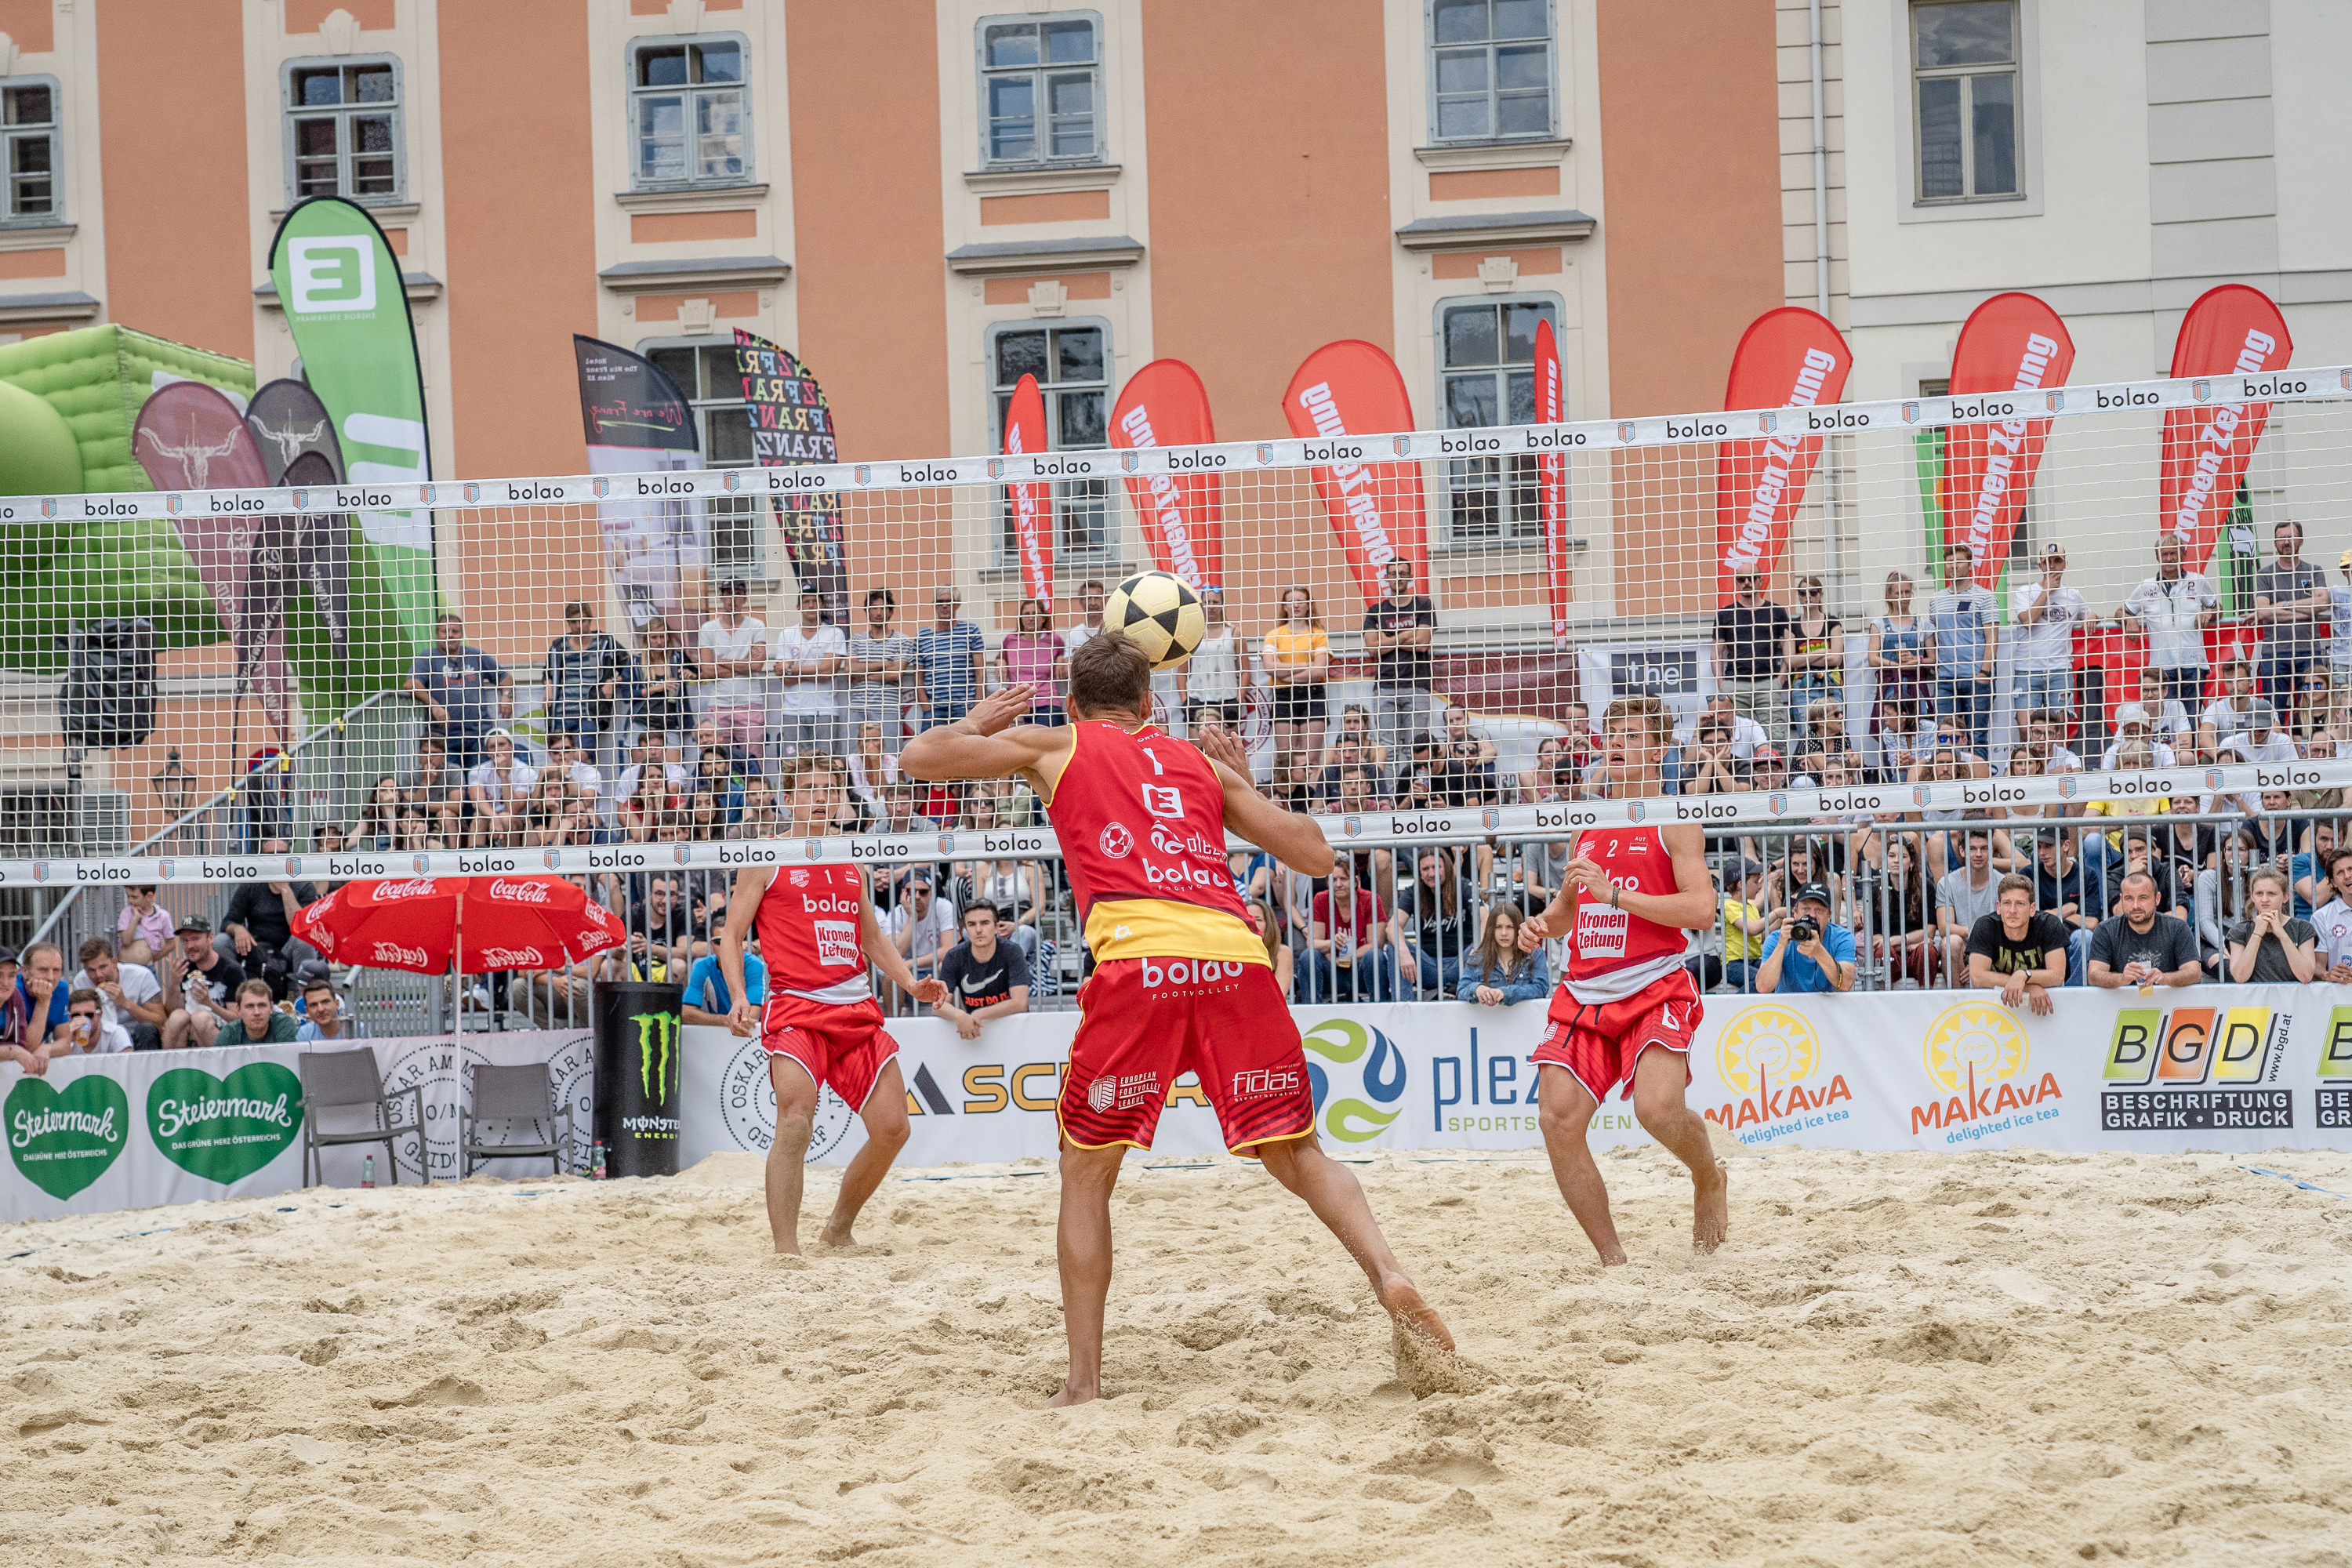 20190531_footvolley_day3_median-8320190531_footvolley_day3_ch